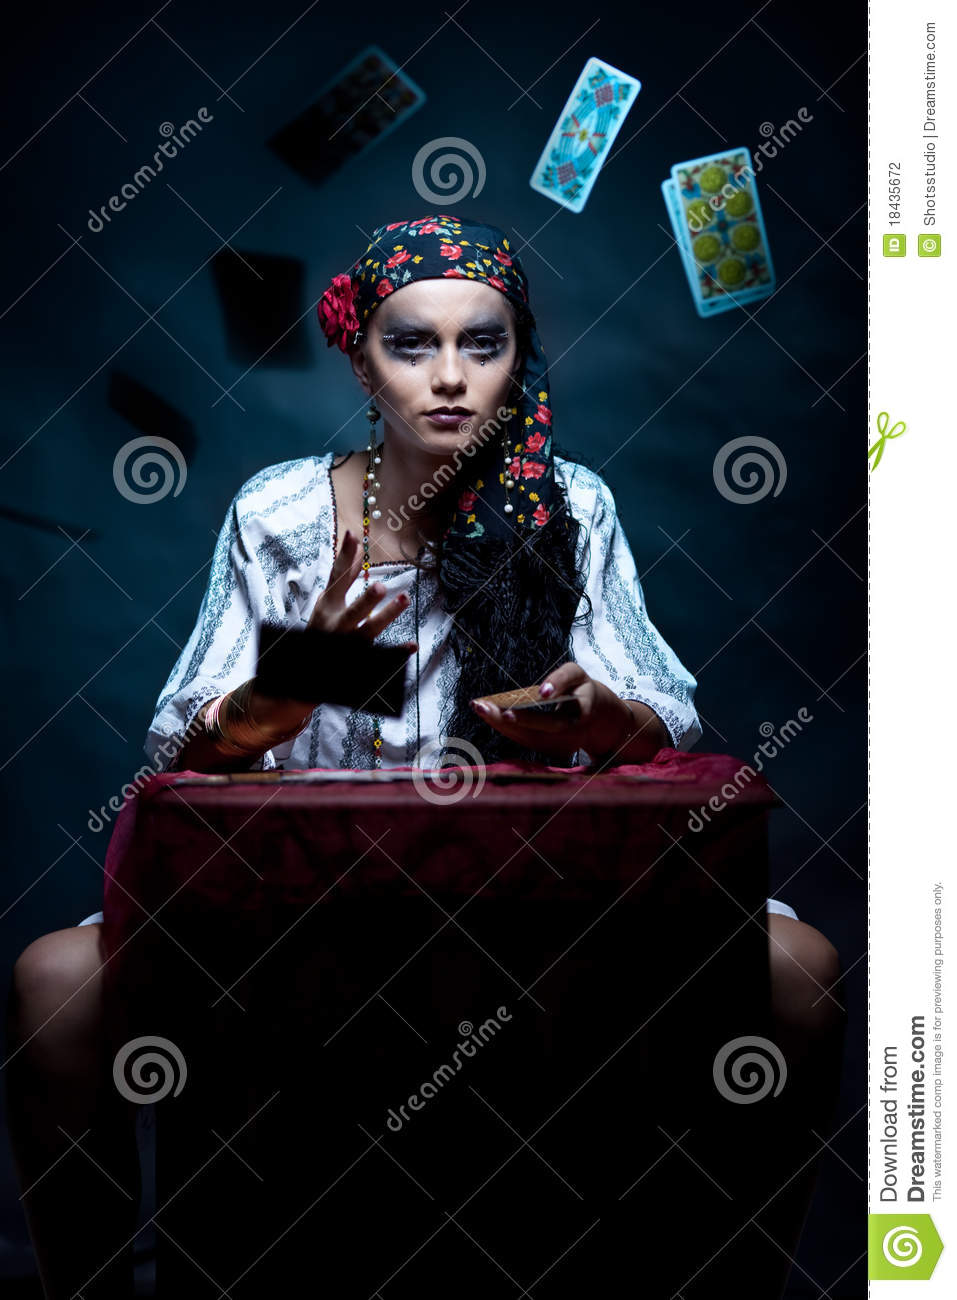 Gypsy fortune teller throwing the tarot cards.